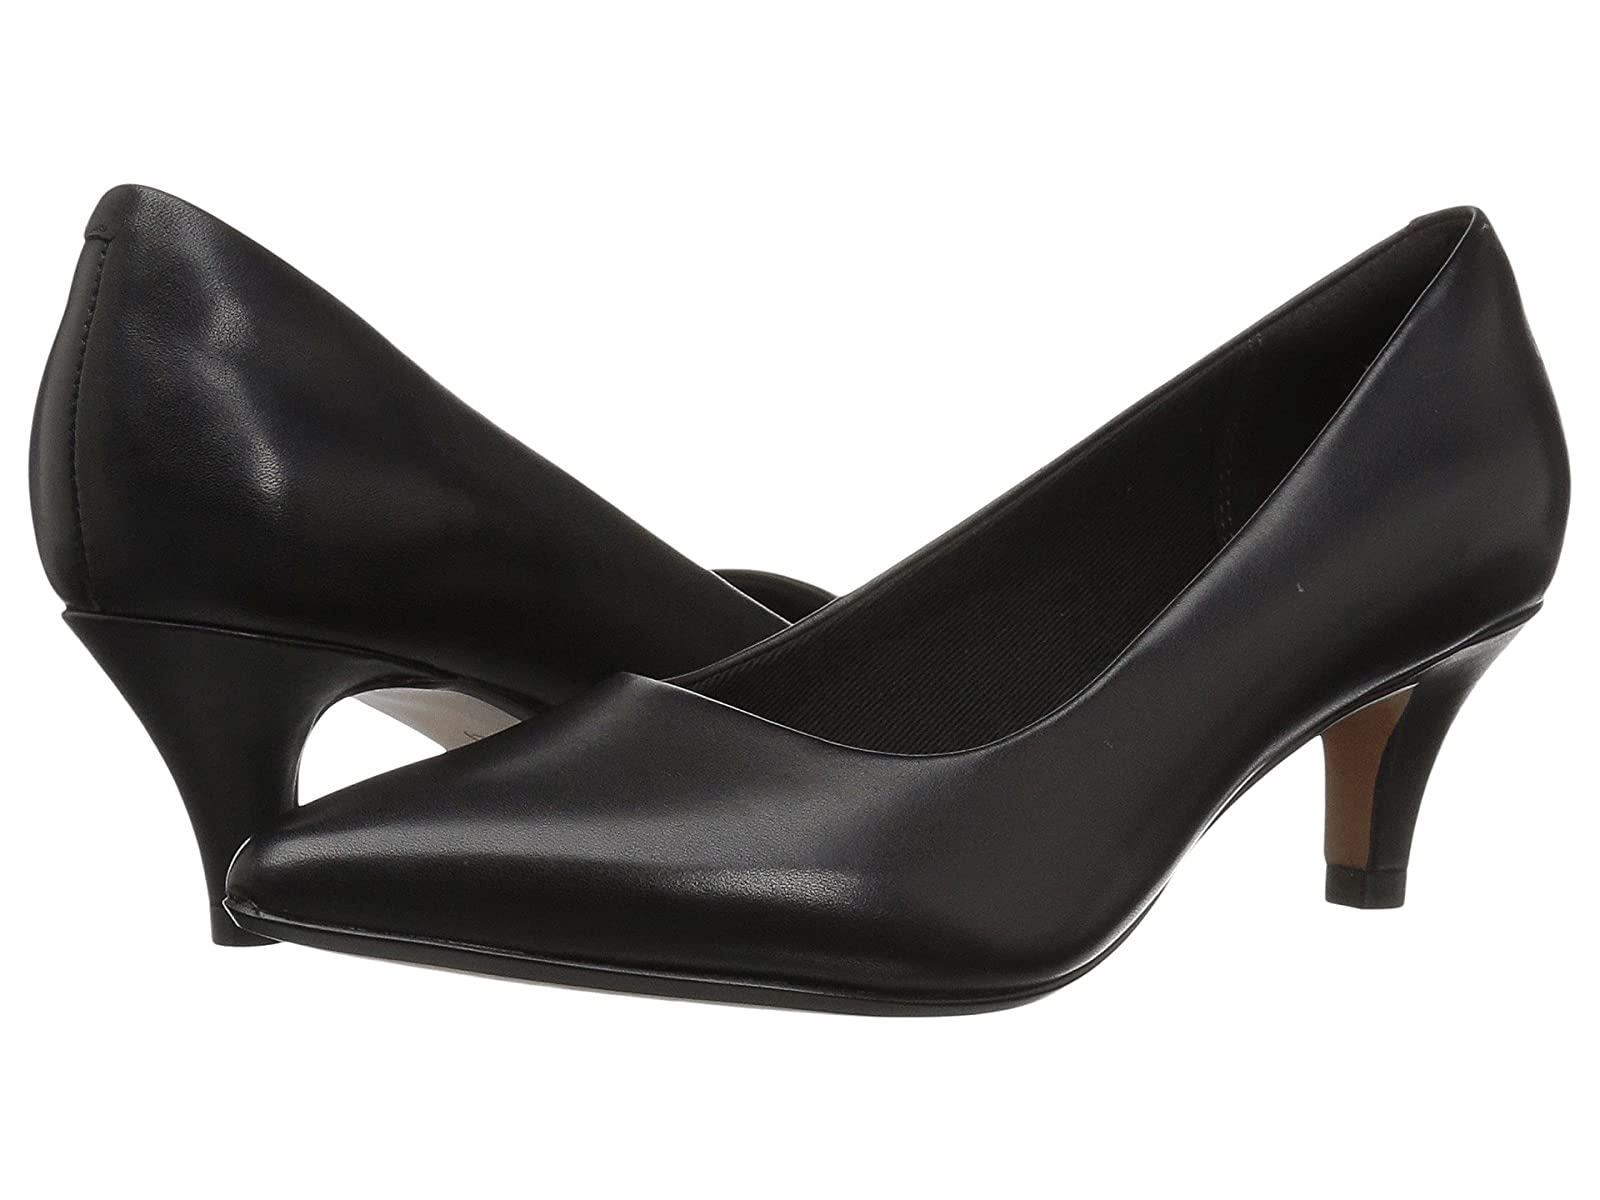 Clarks Linvale JericaCheap and distinctive eye-catching shoes